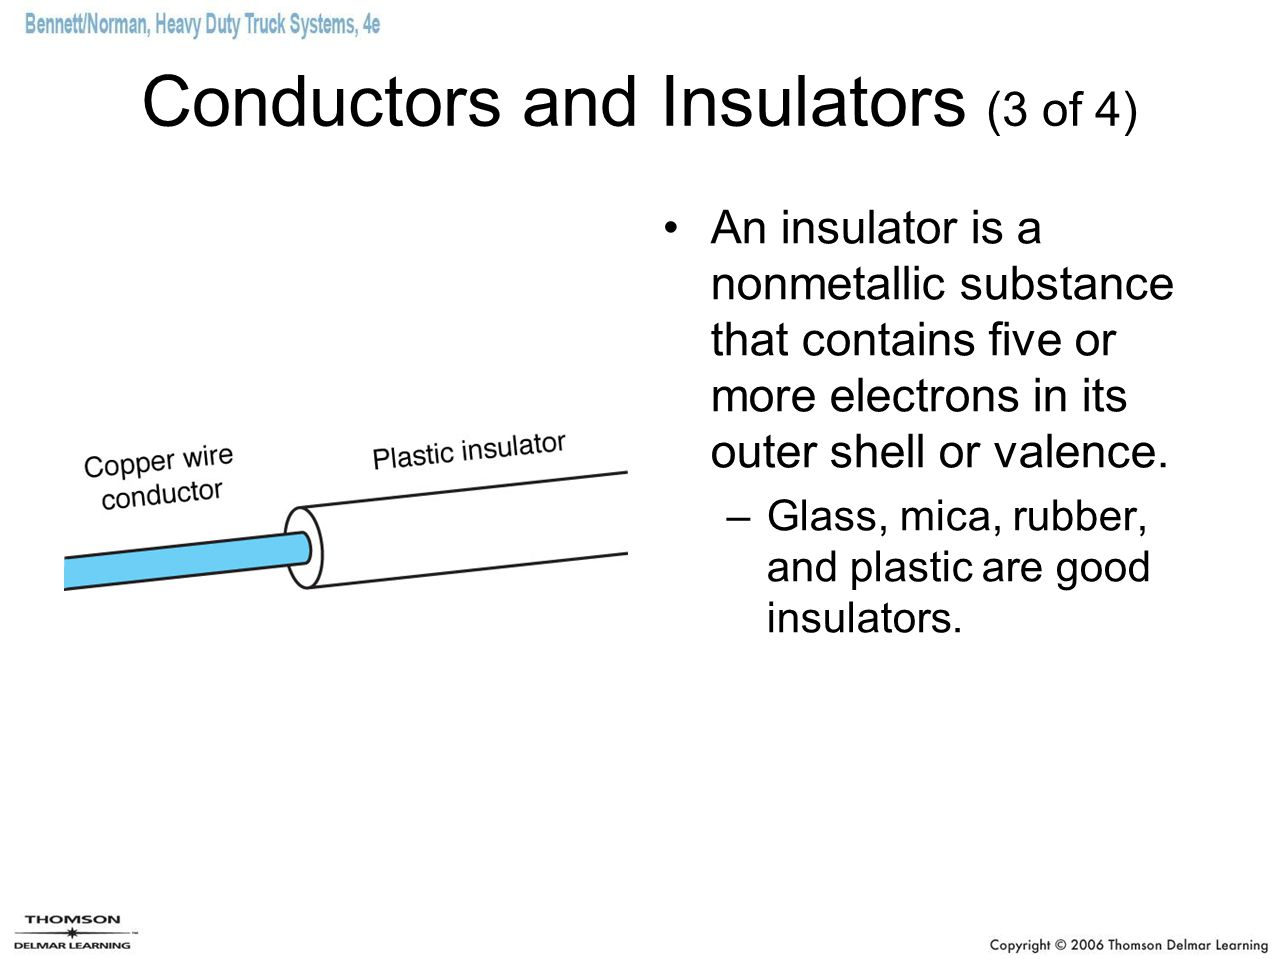 Conductors and Insulators (3 of 4)